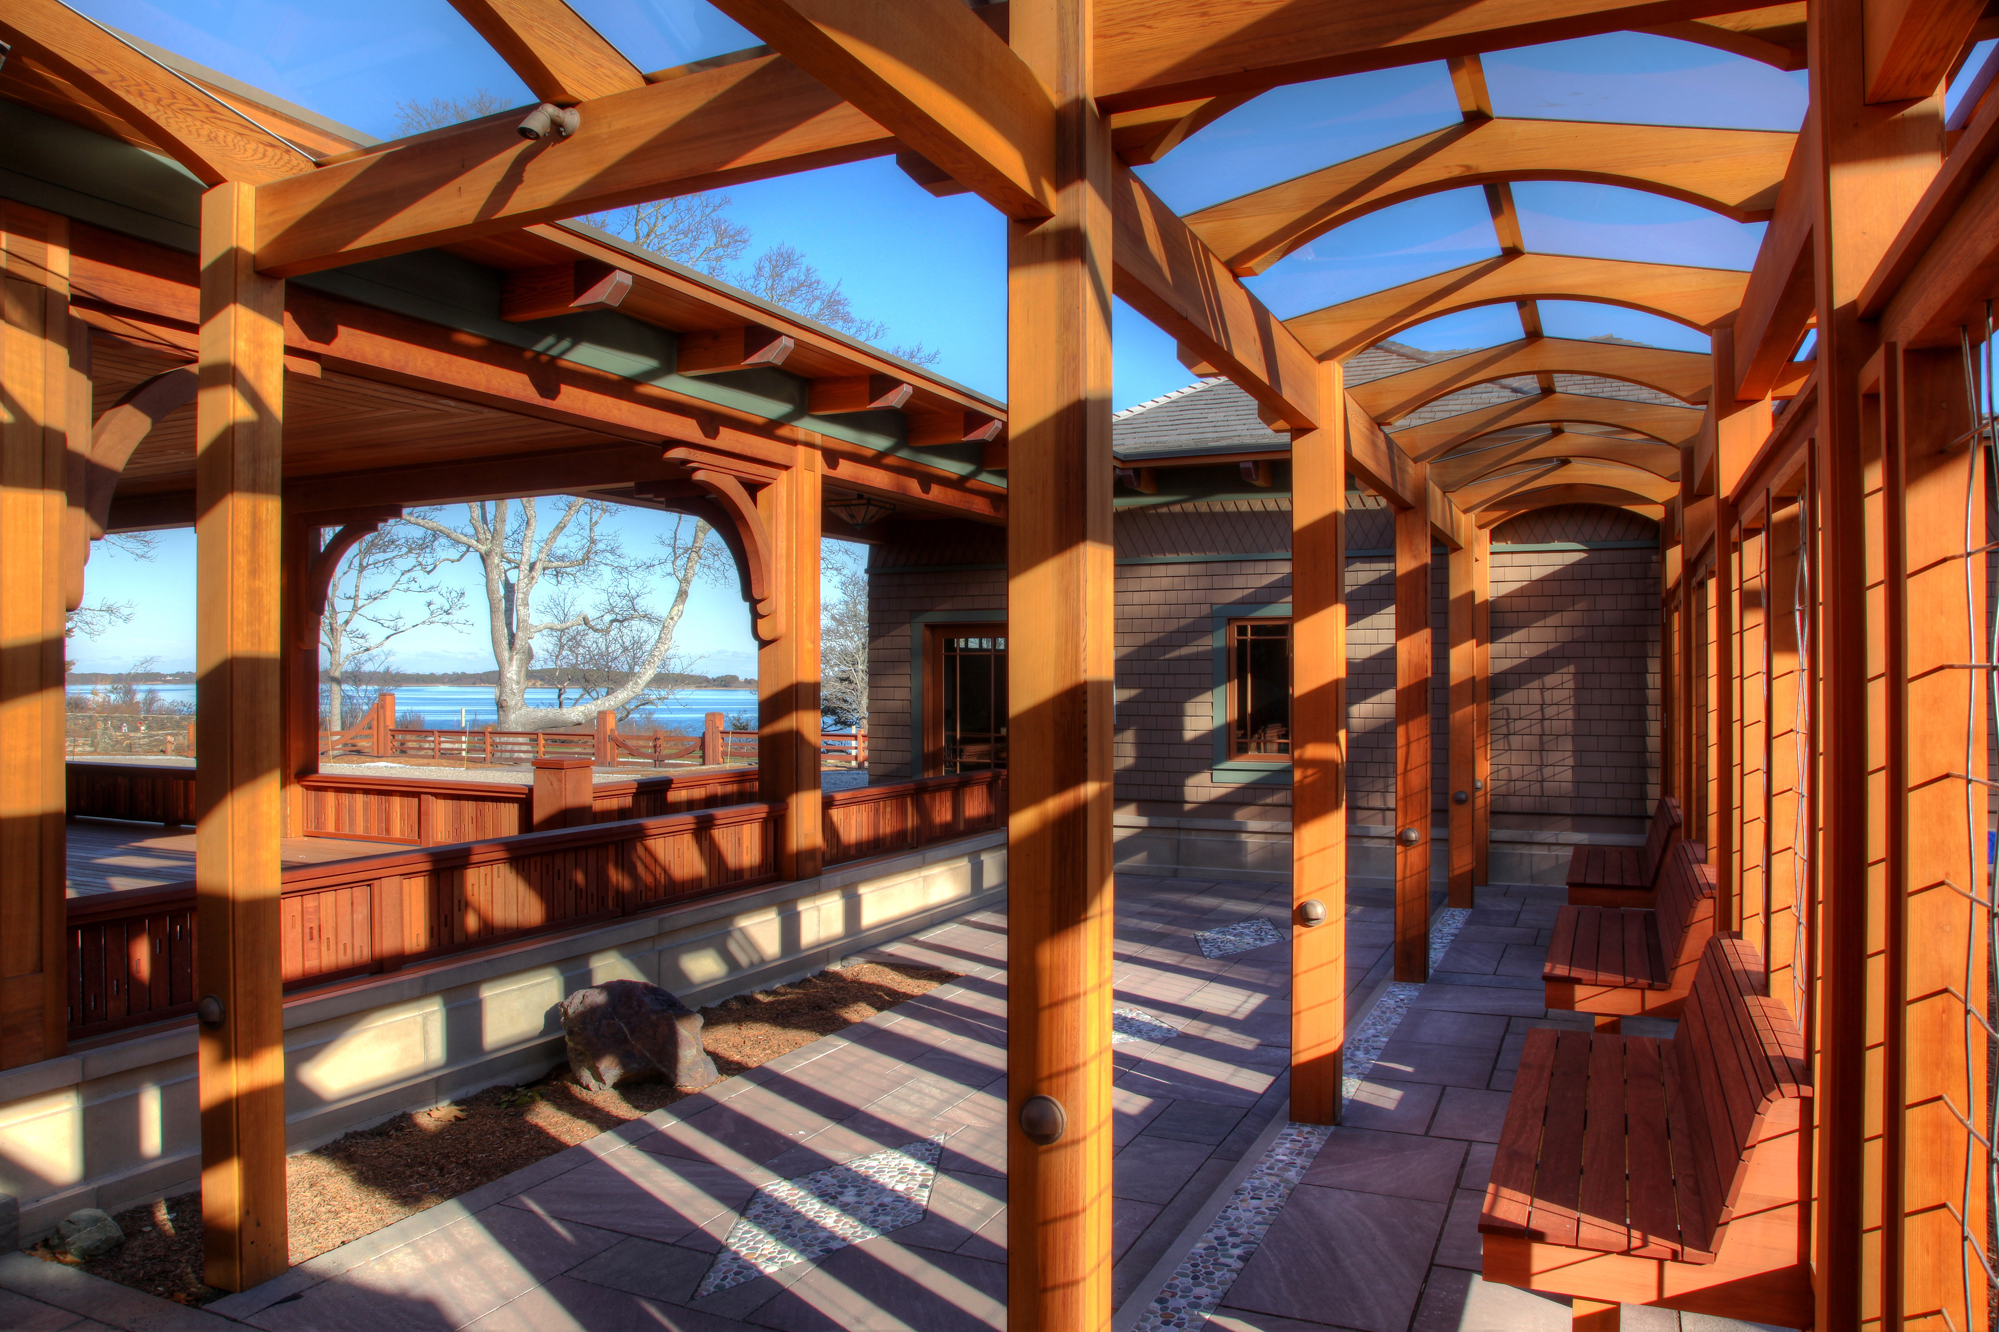 designing porch roofs professional deck builder roofing jlc online decorative beams for a craftsman style arbor